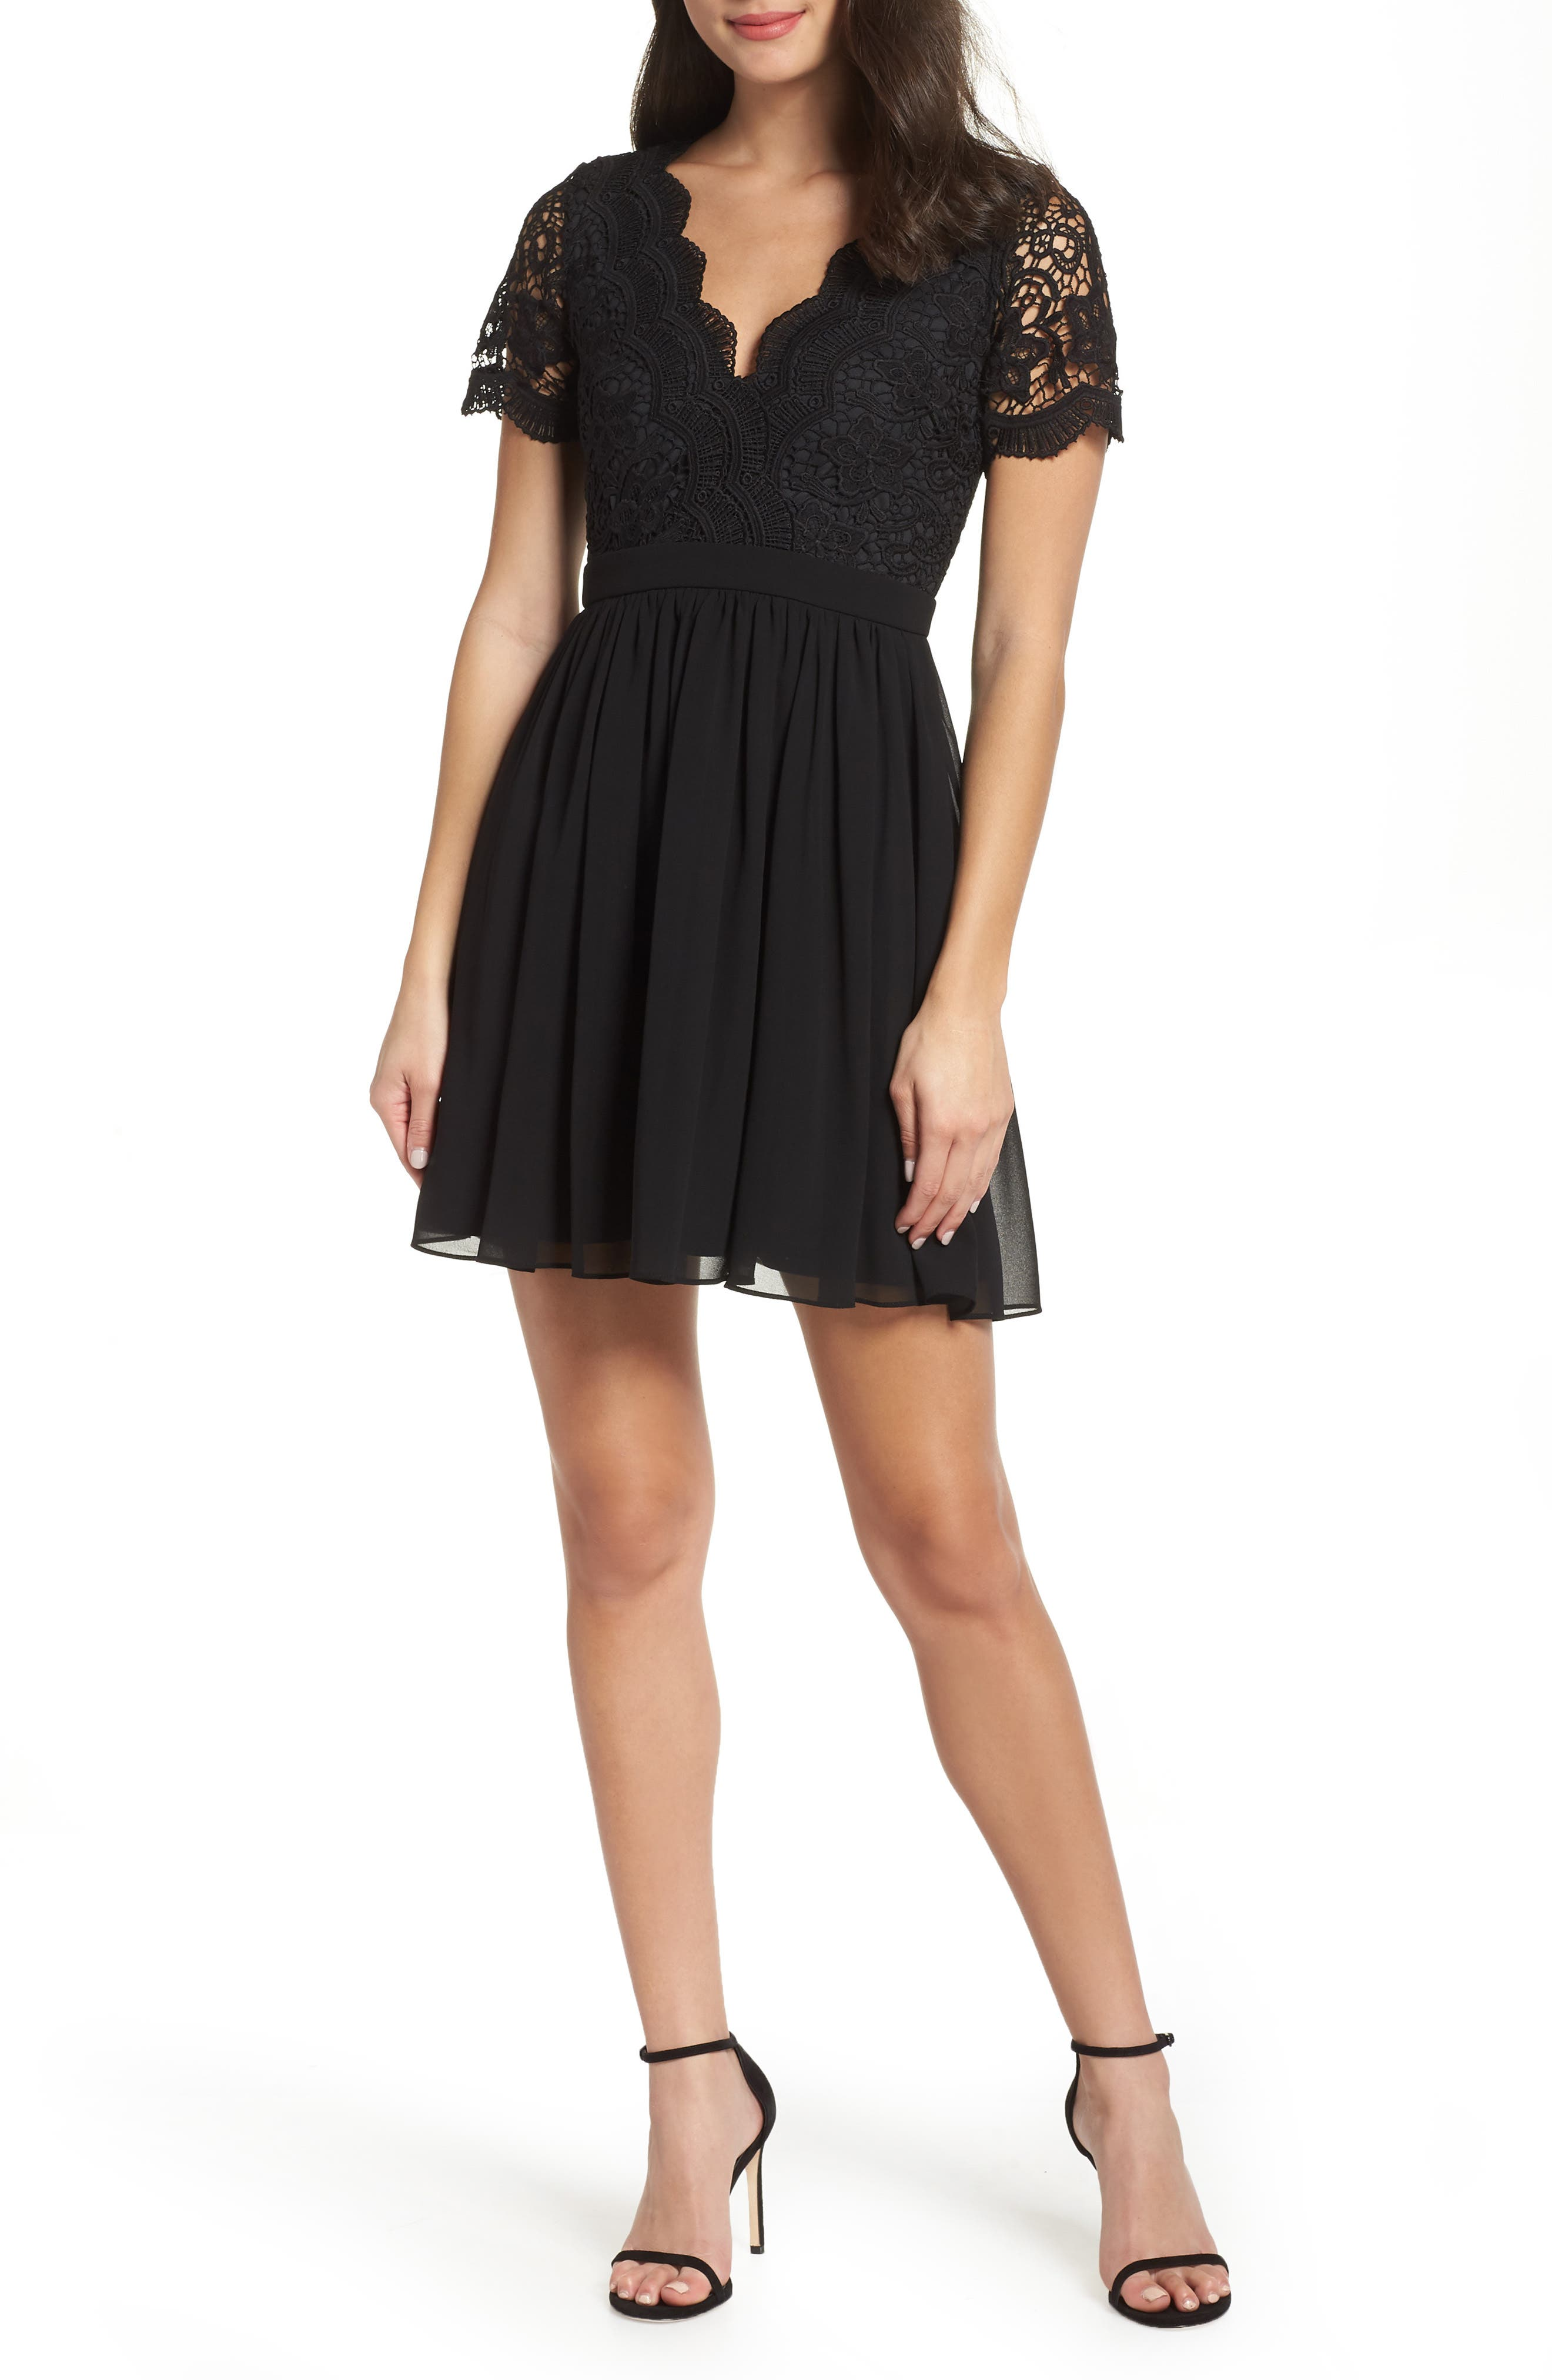 Lulus Angel In Disguise Lace & Chiffon Party Dress, Black